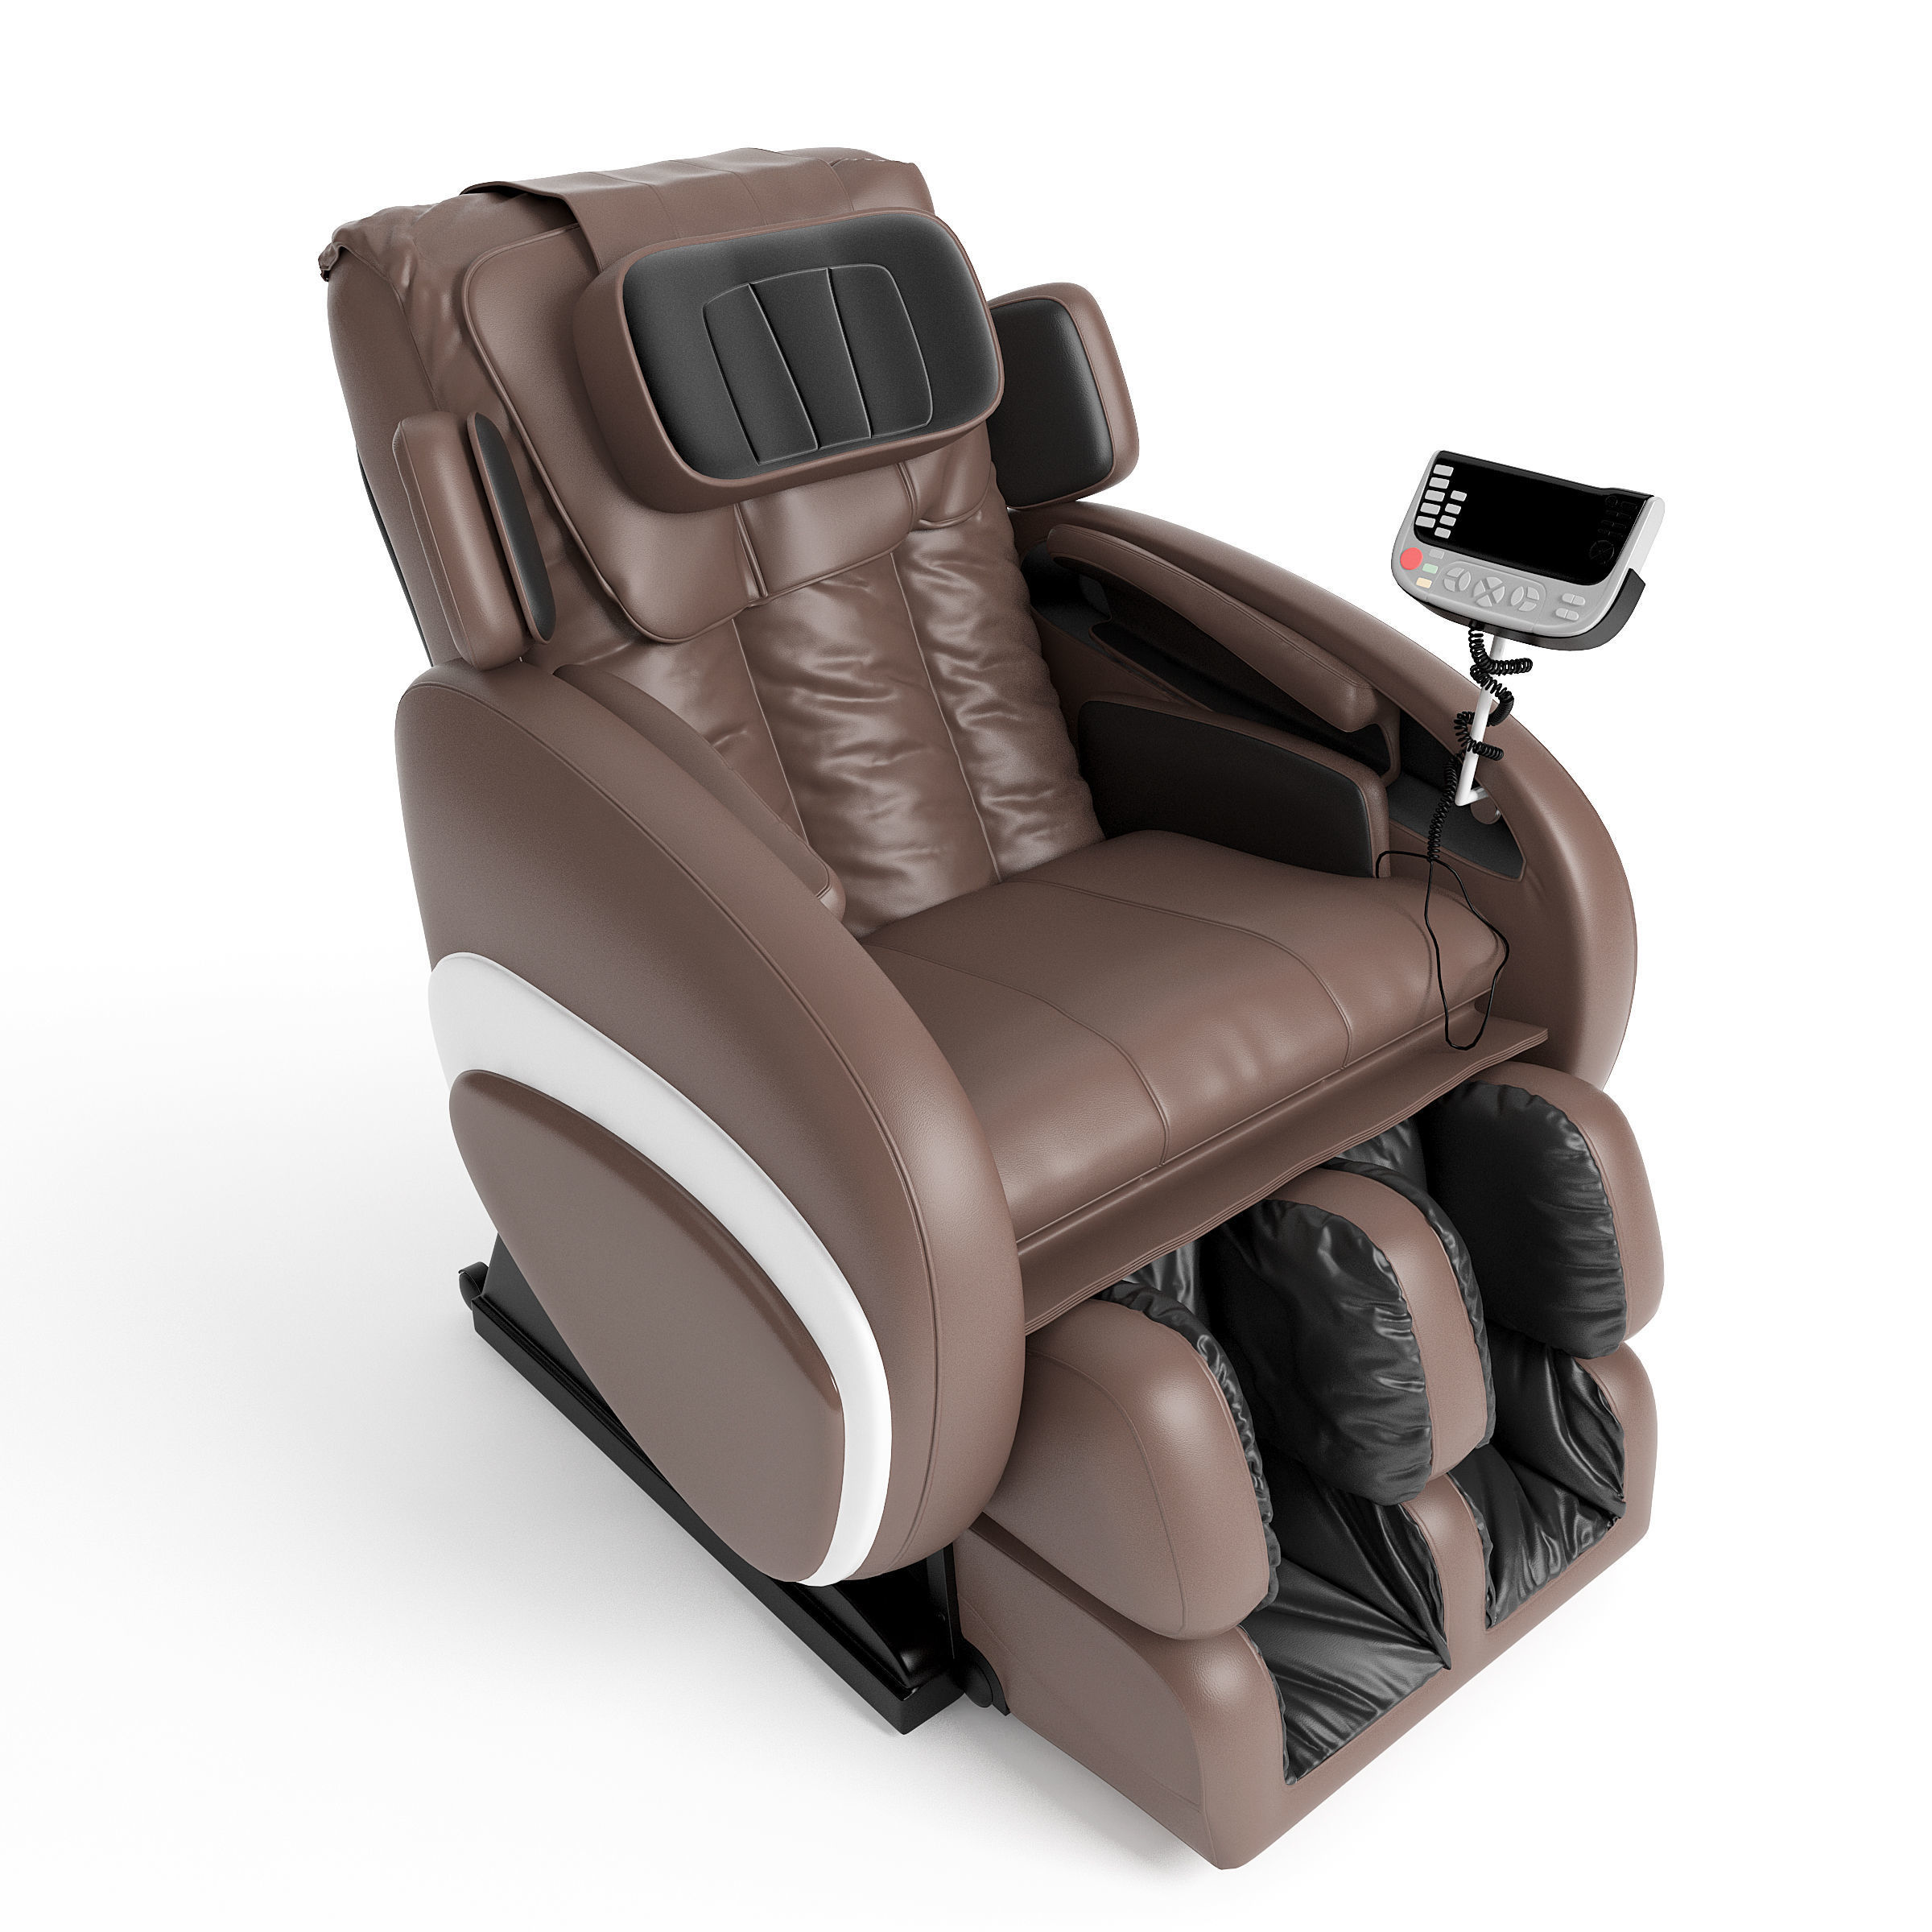 Osaki OS 4000 Massage chair